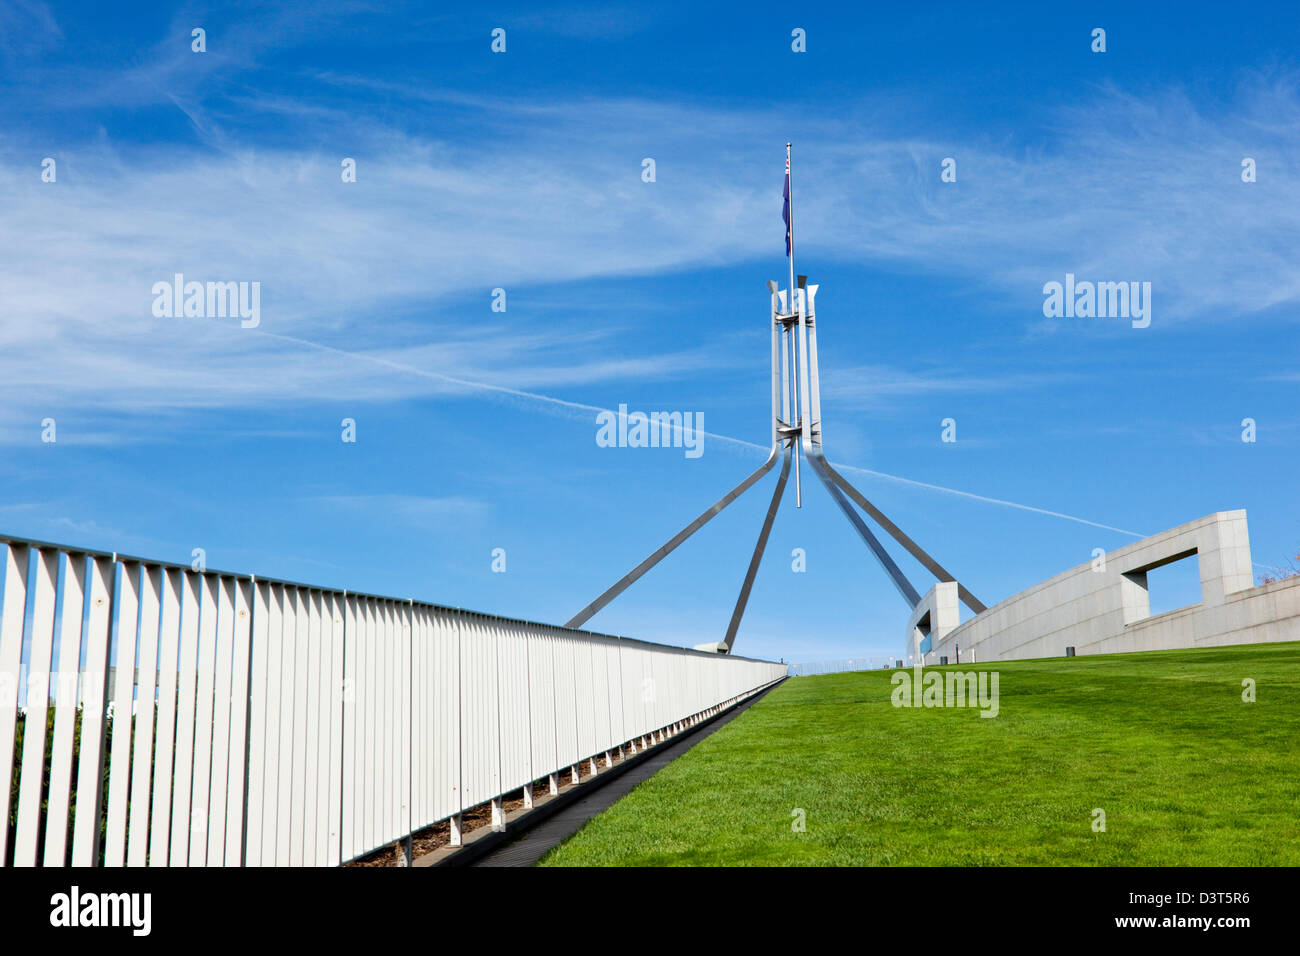 View of Parliament House flagpole from The rooftop lawn. Canberra, Australian Capital Territory (ACT), Australia Stock Photo